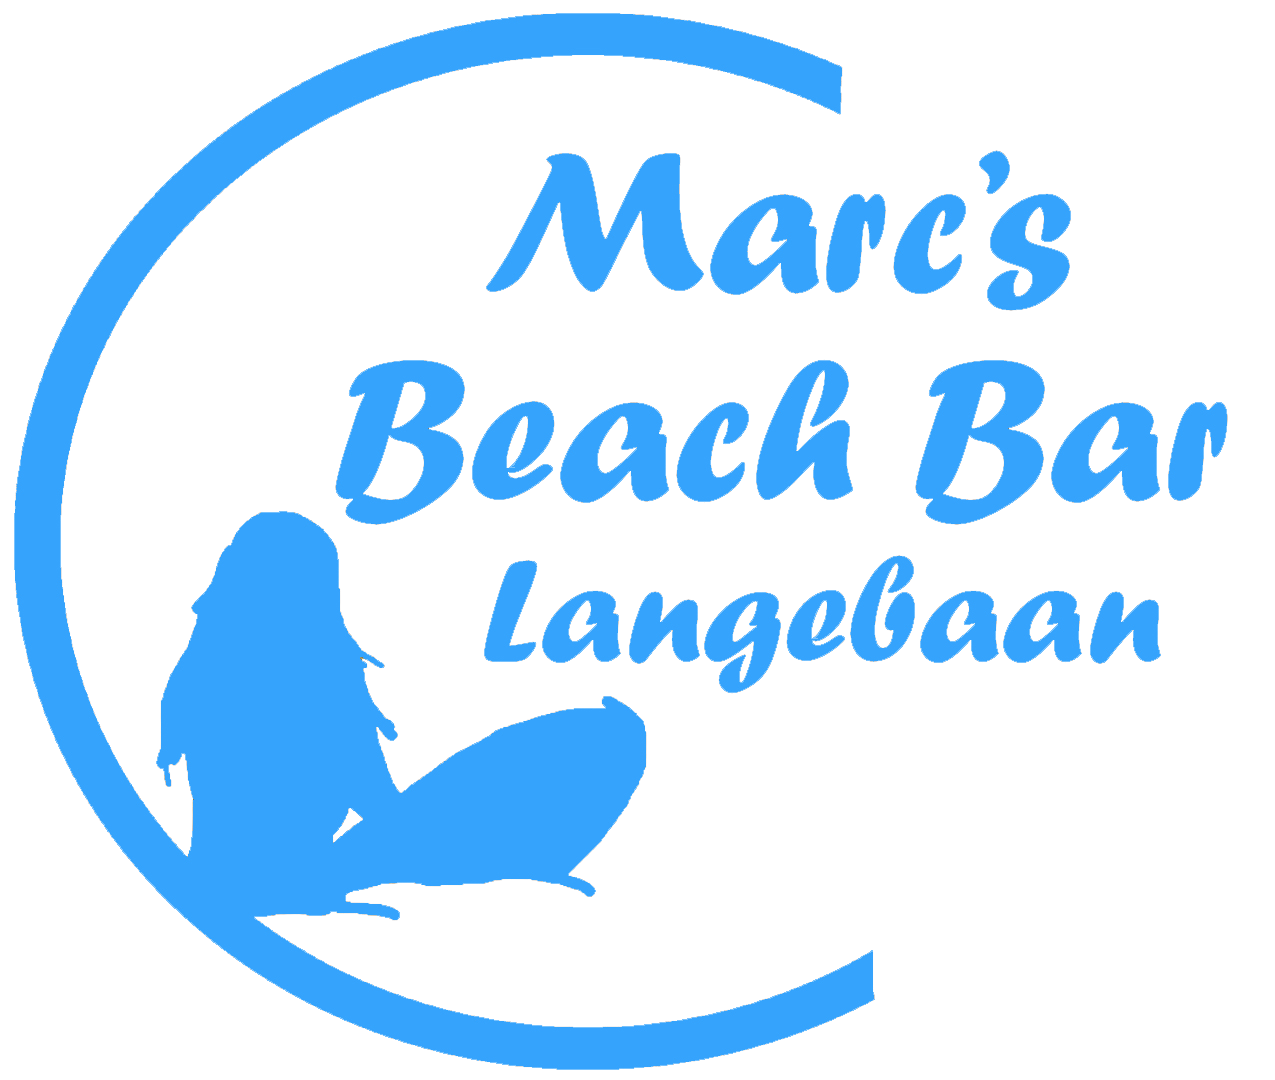 Marc's Beach Bar